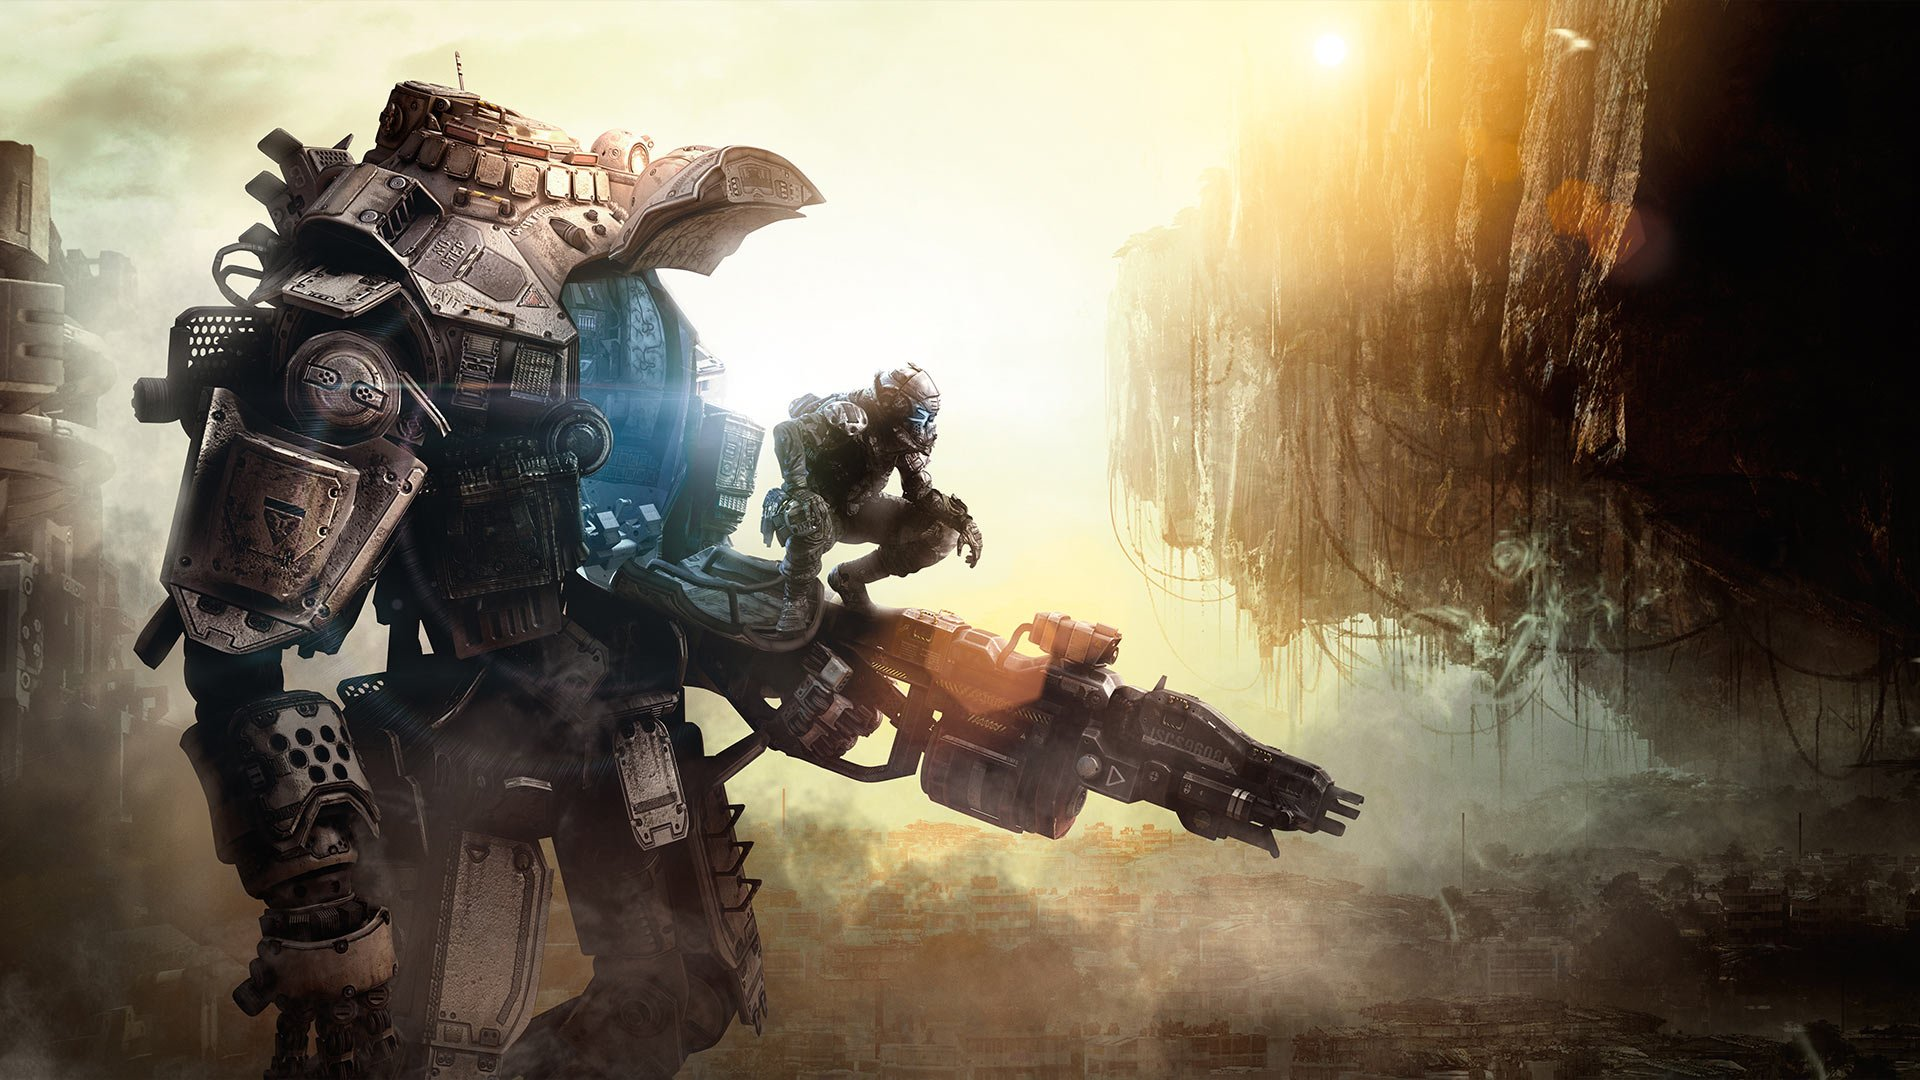 71 titanfall hd wallpapers | background images - wallpaper abyss